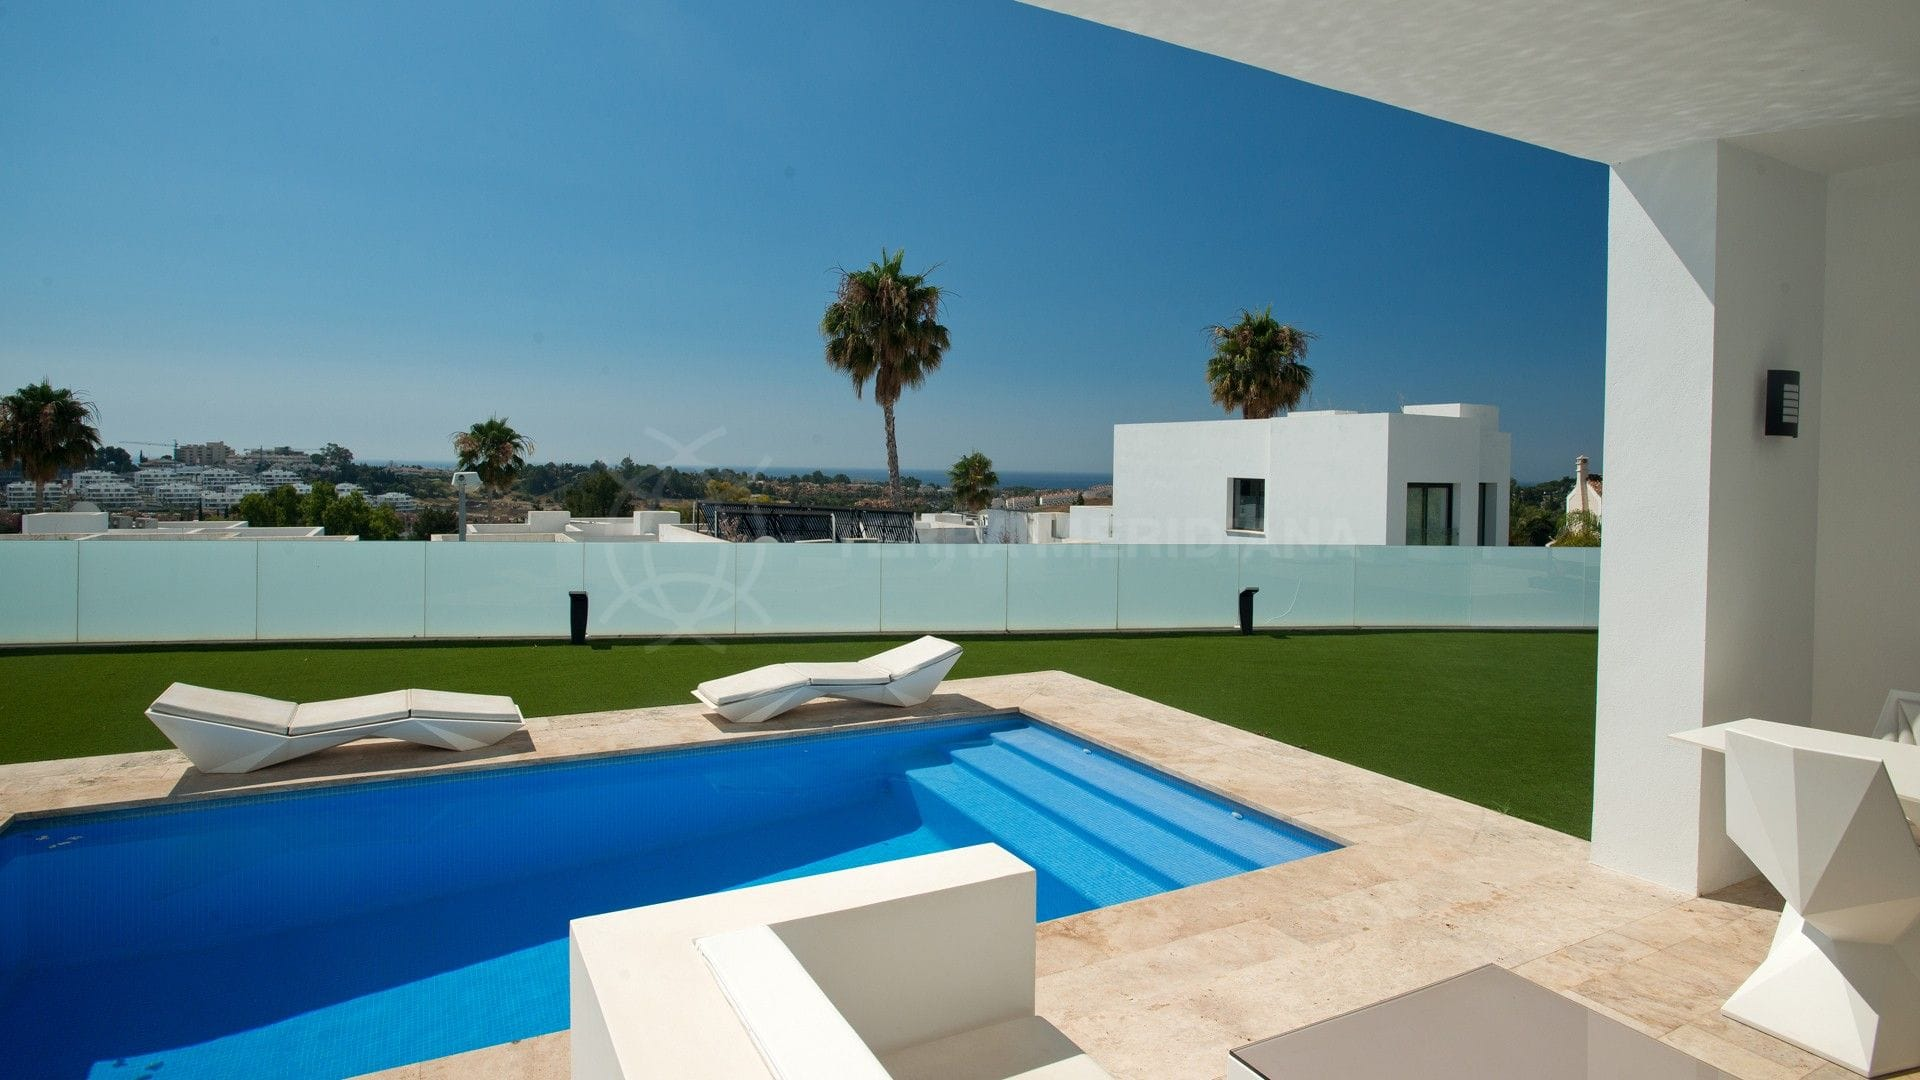 Advantages and issues related to purchasing new property in Spain